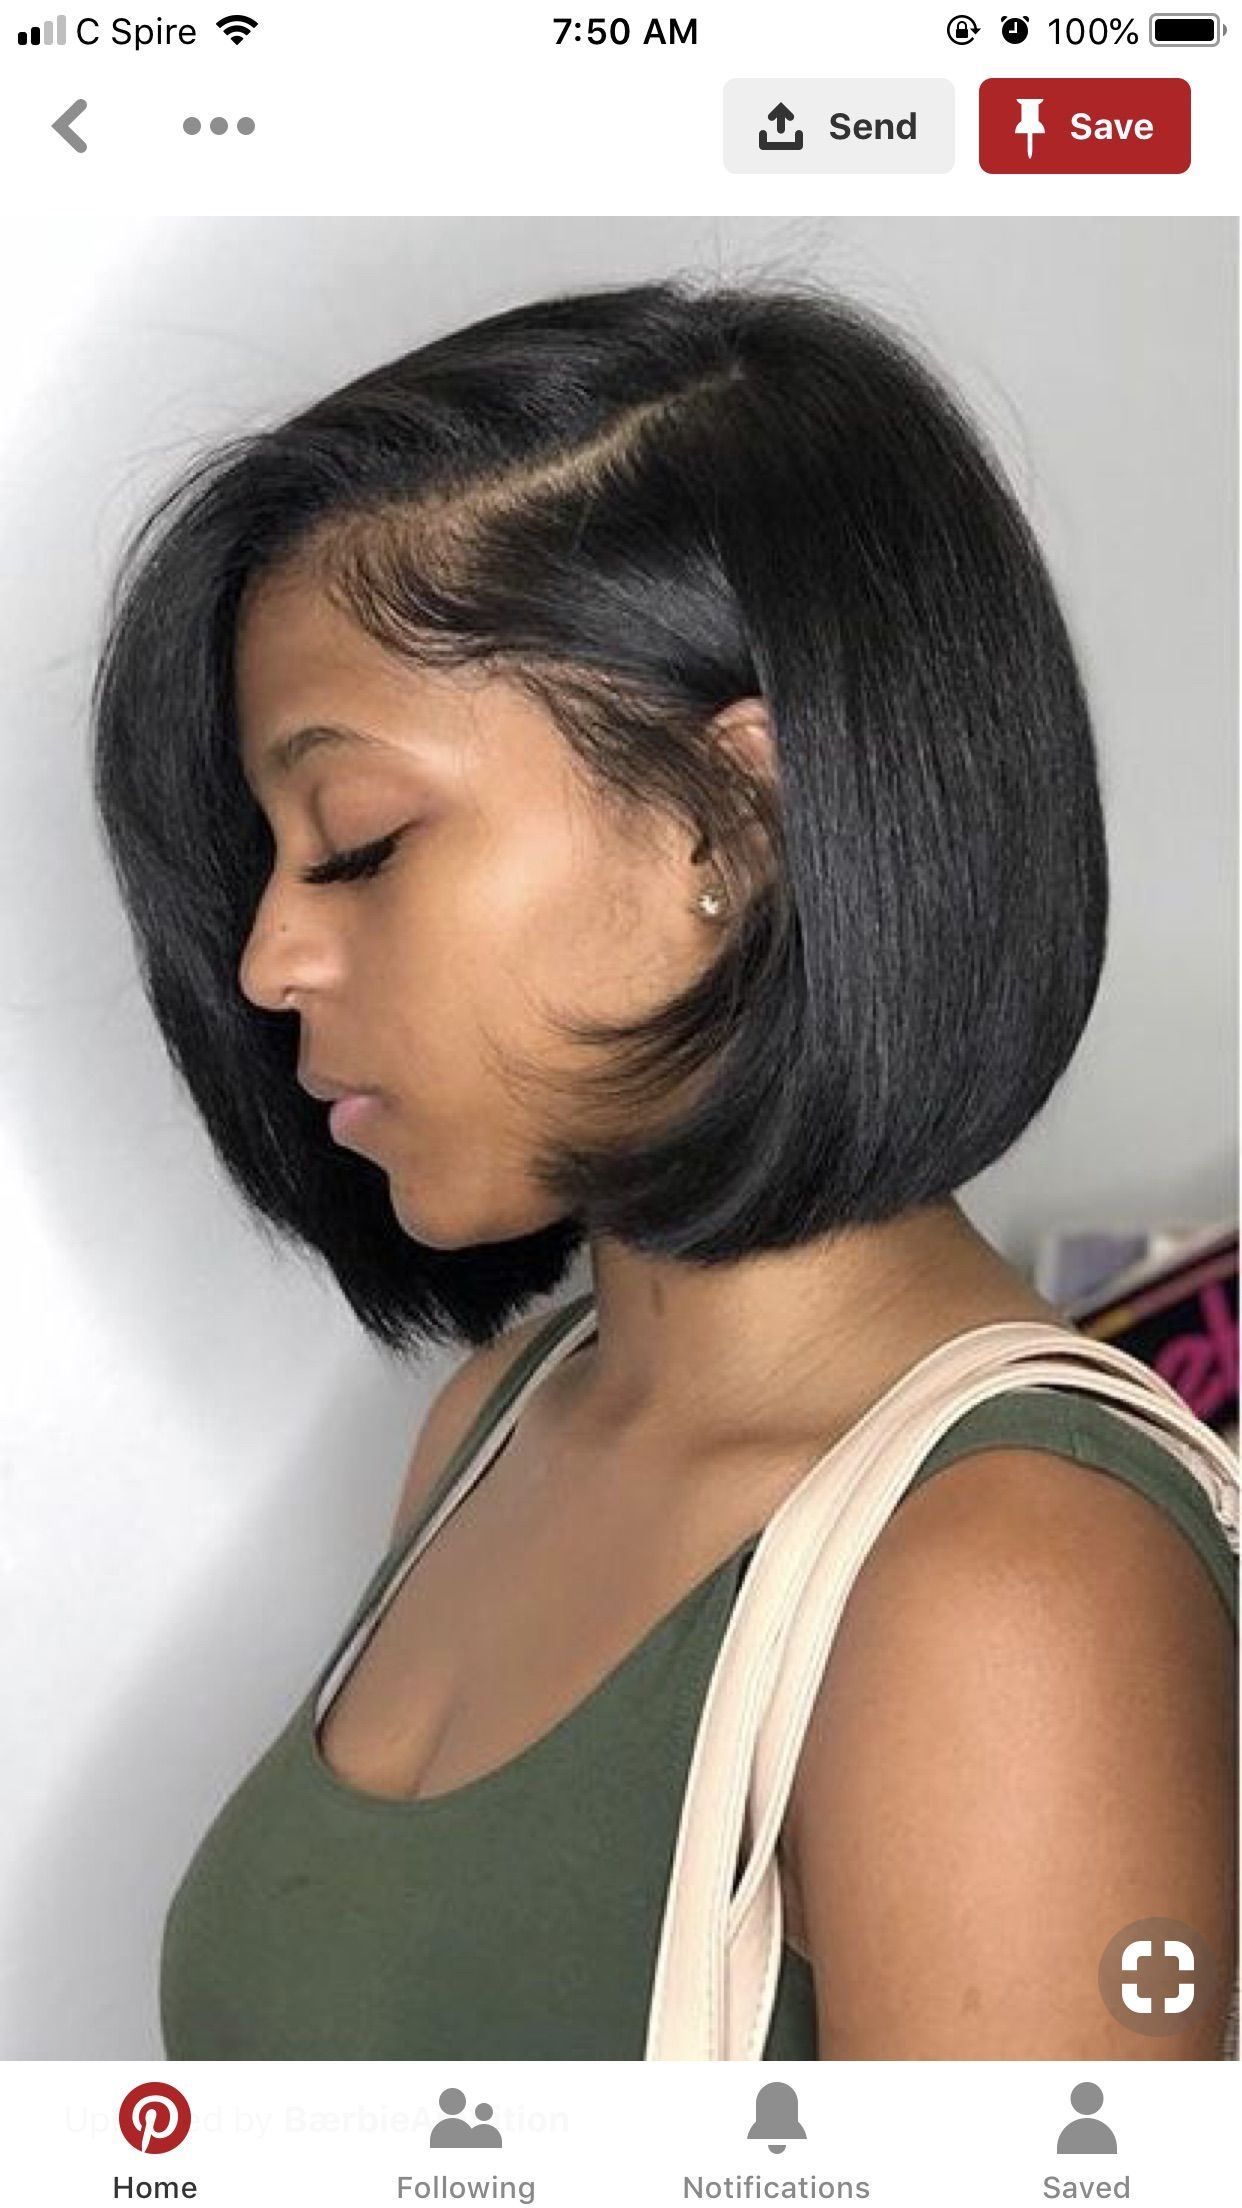 pin by princess james on glam sqaud!!! :) in 2019 | wig